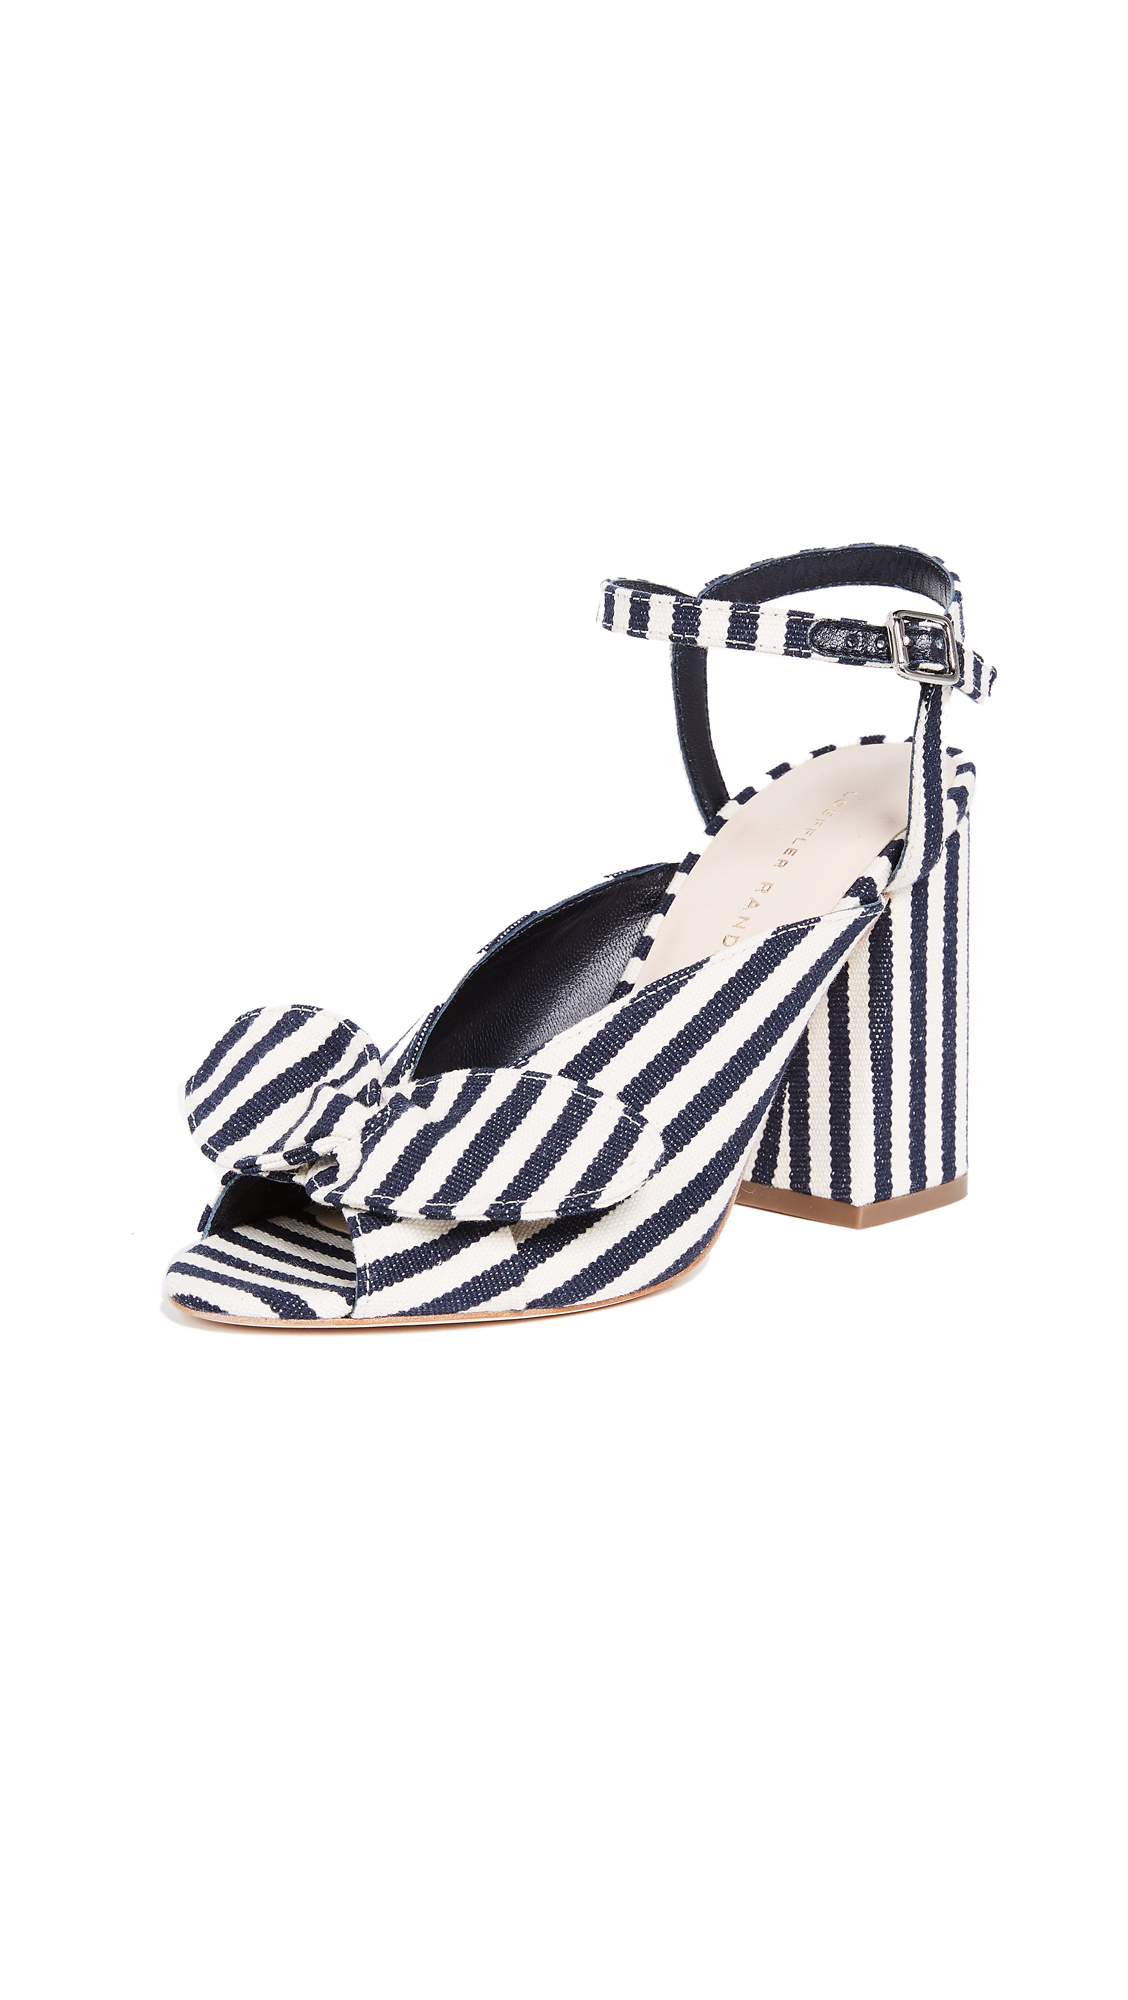 Loeffler Randall Leigh Bow Sandals - White/Eclipse Stripe